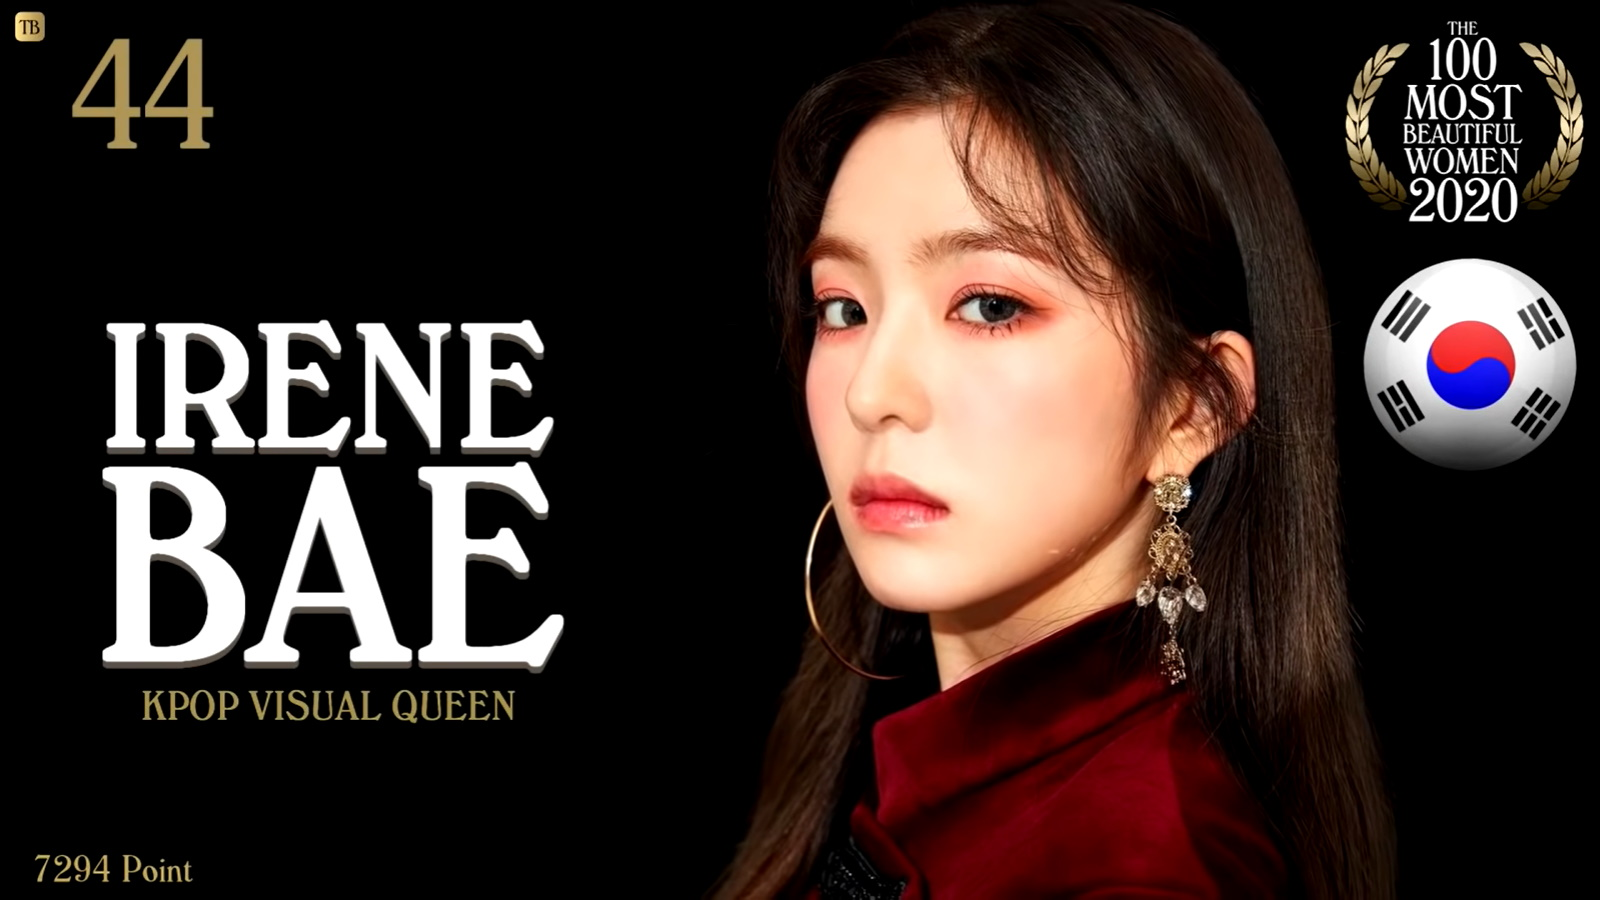 IRENE - The 100 Most Beautiful Women Of 2020